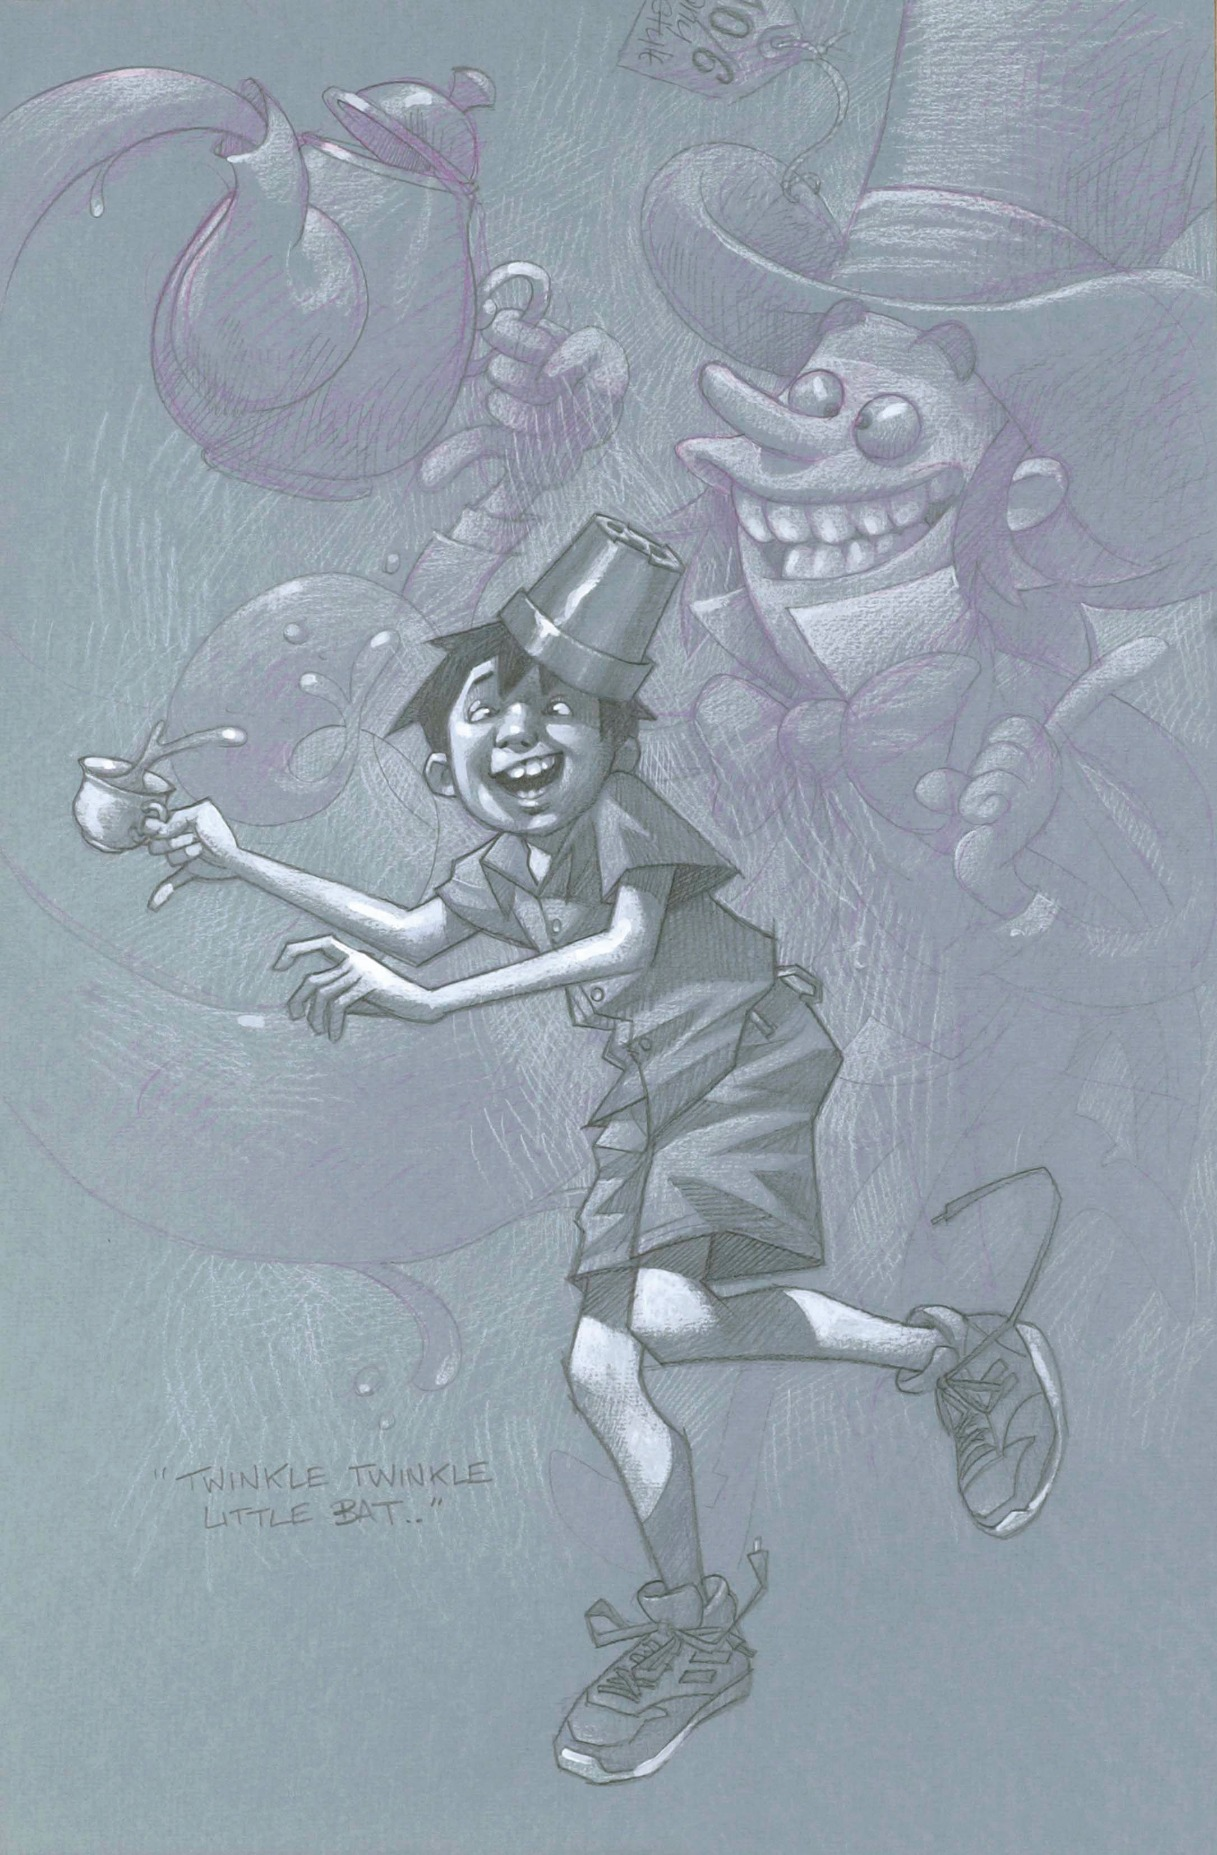 Twinkle, Twinkle, Little Bat.... by Craig Davison, Nostalgic | Humour | Children | Film | Comic